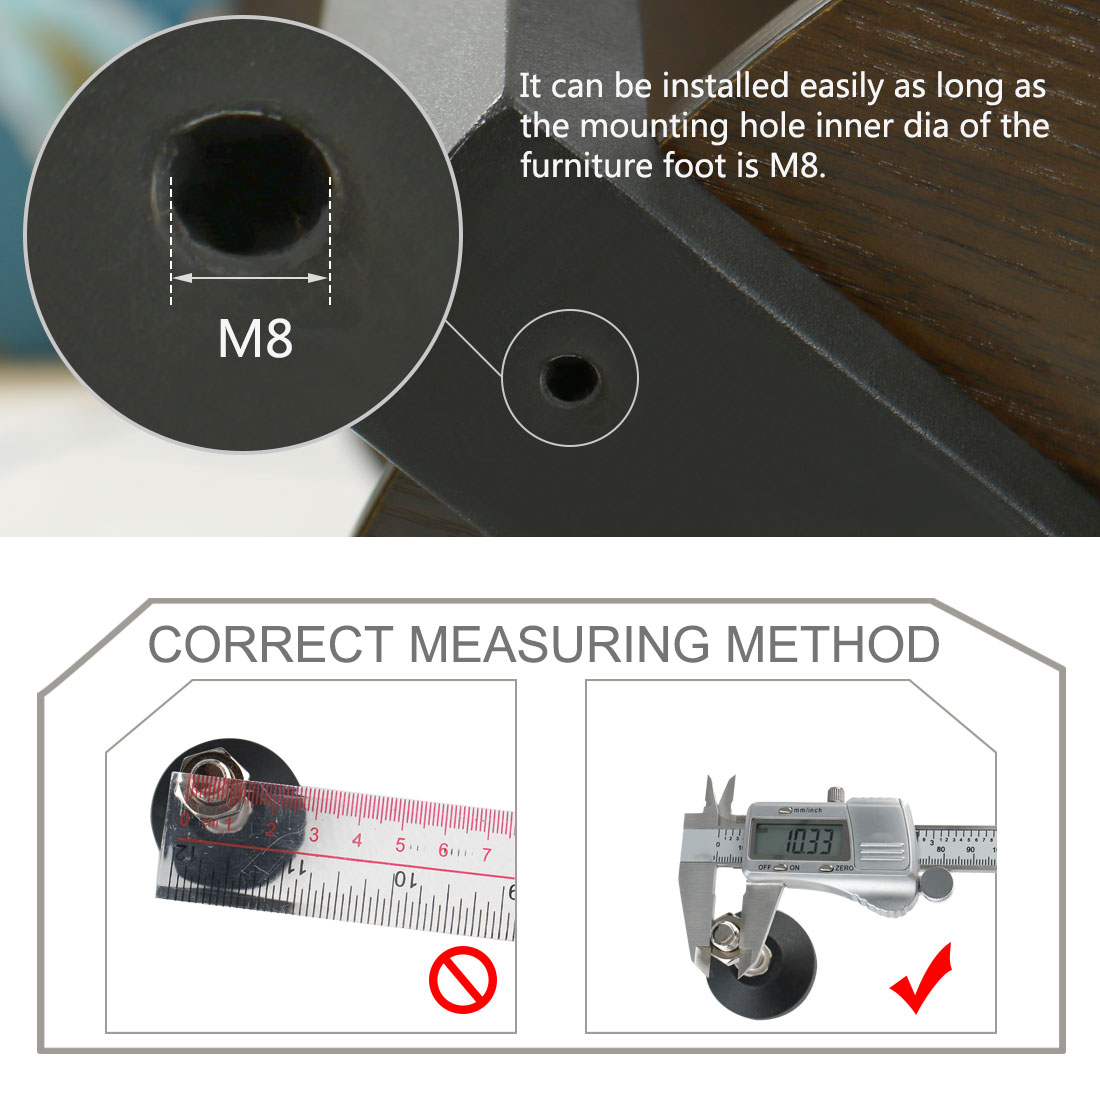 M8 x 94 x 50mm Leveling Foot Adjustable Leveler Protector for Machine Leg 4pcs - image 6 of 7